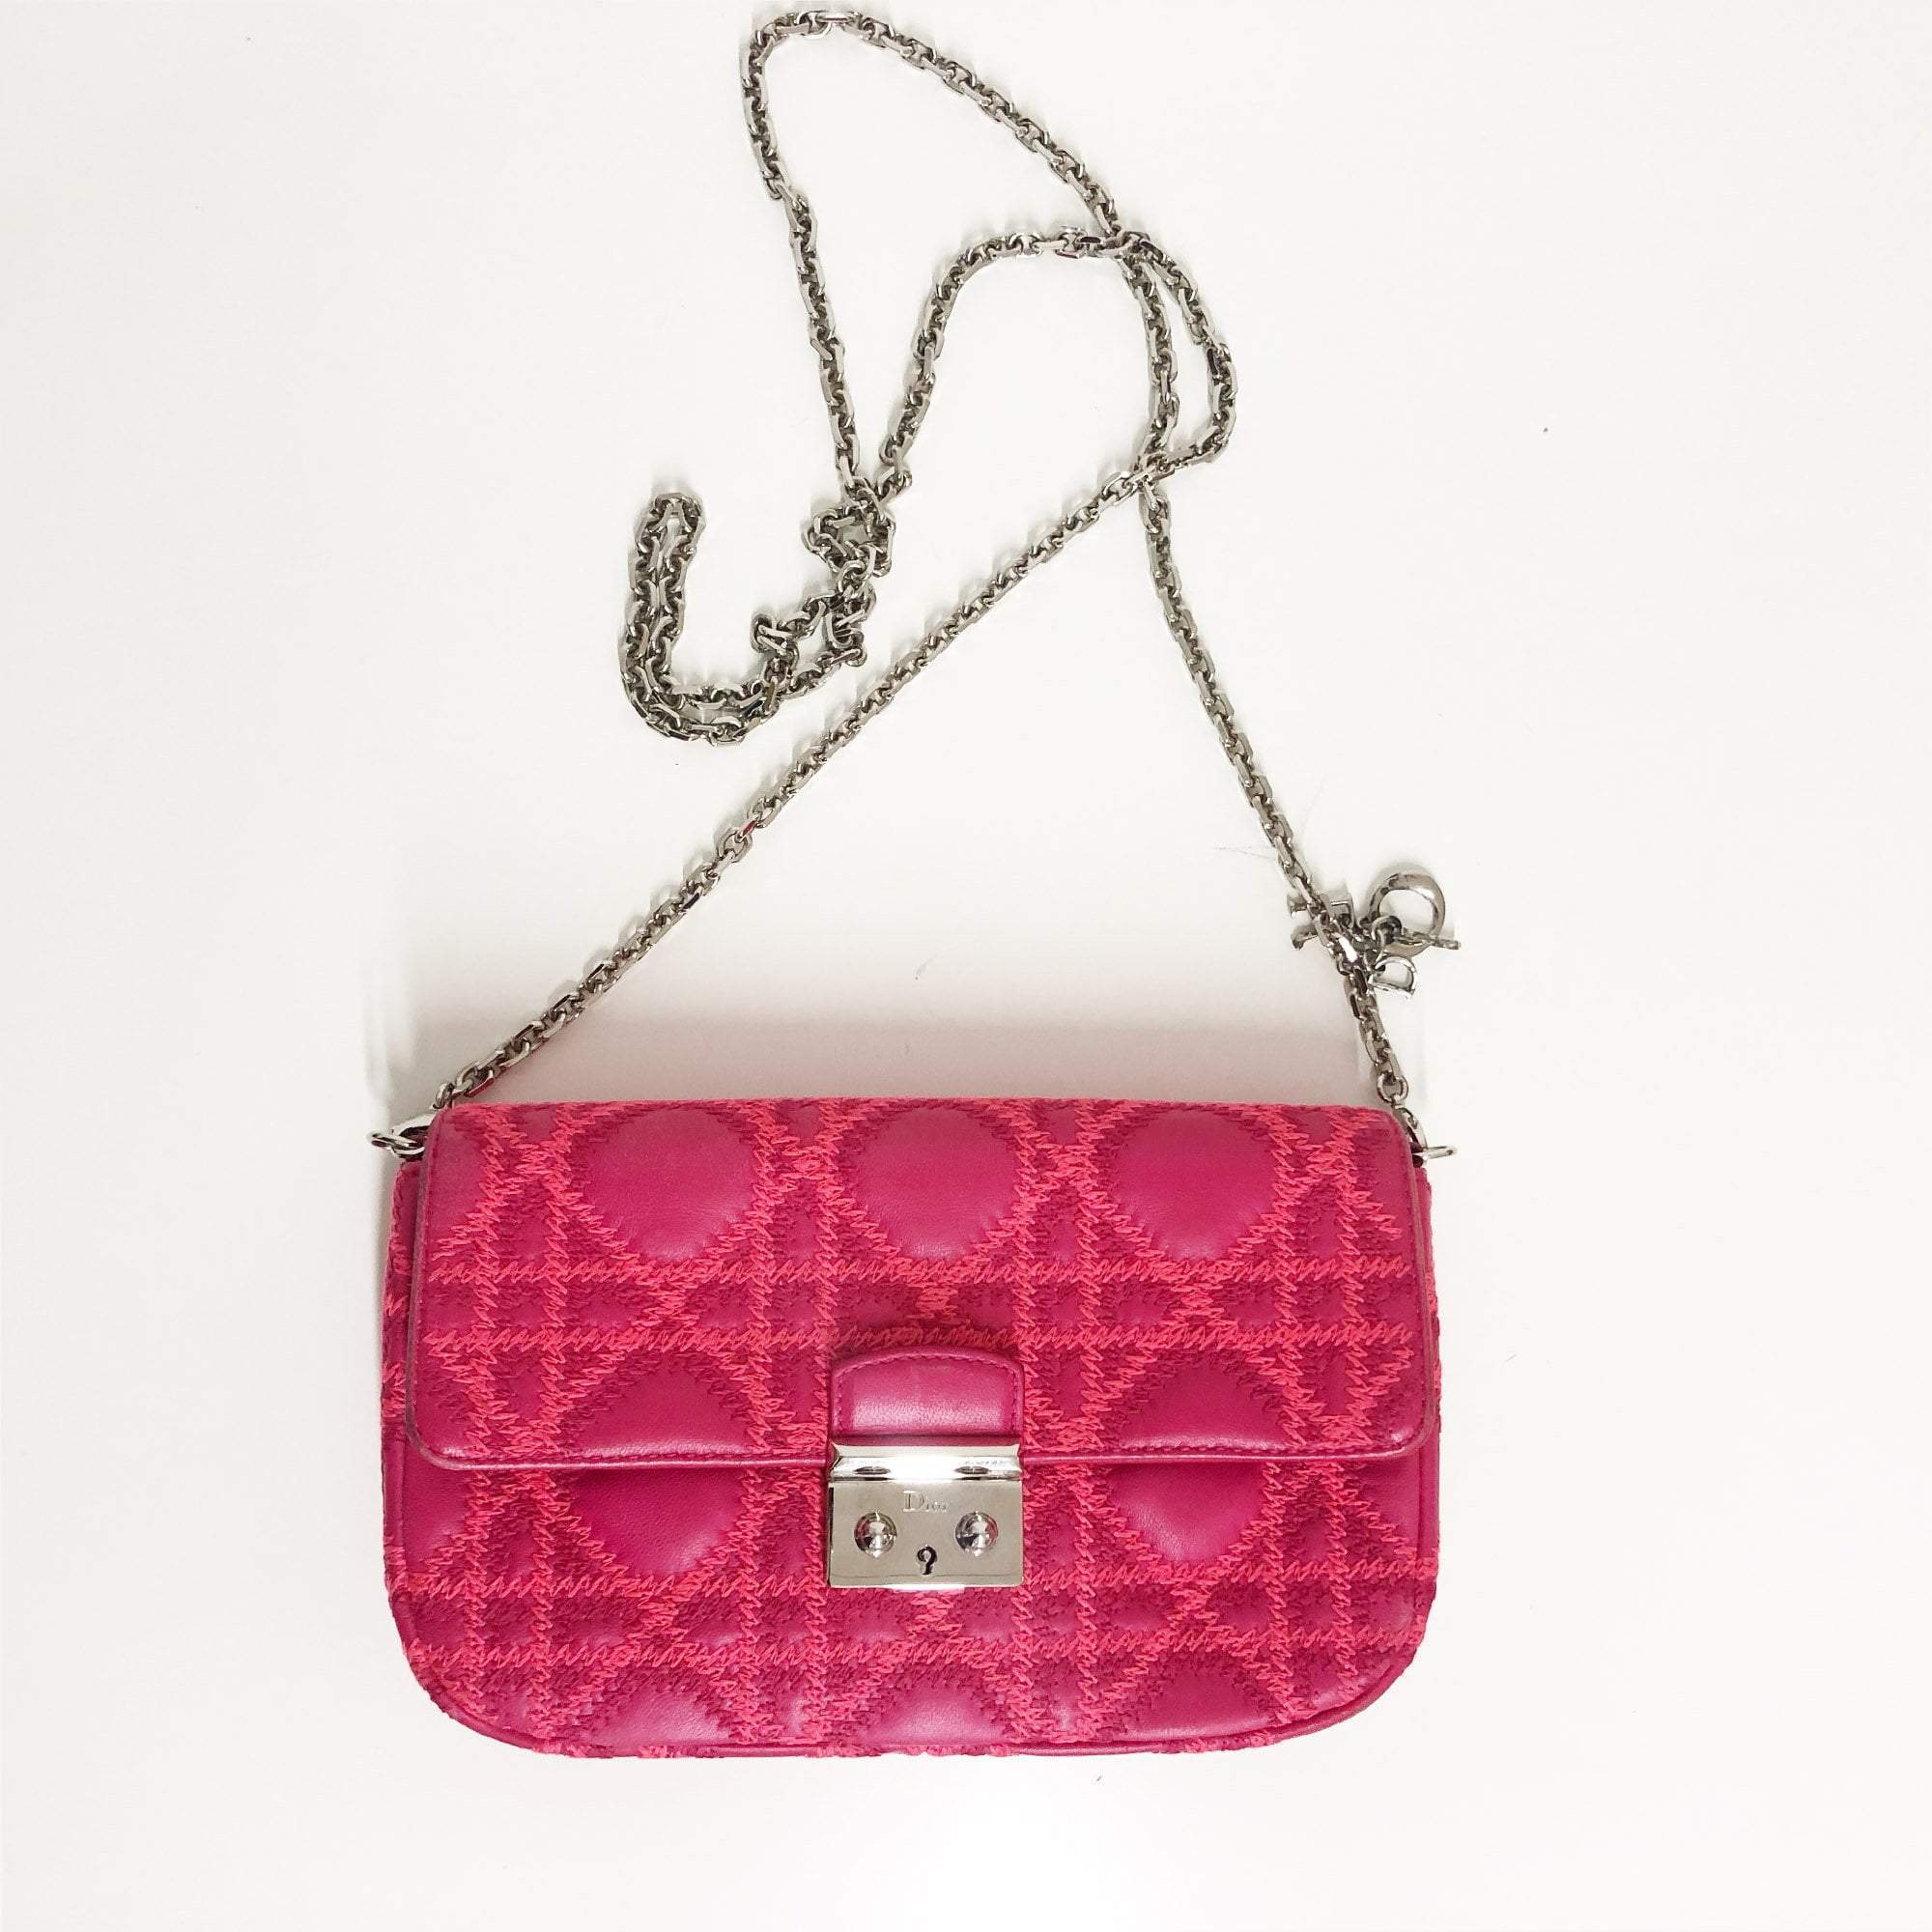 Christian Dior Miss Dior Cannage Quilted Leather Small Flap Bag